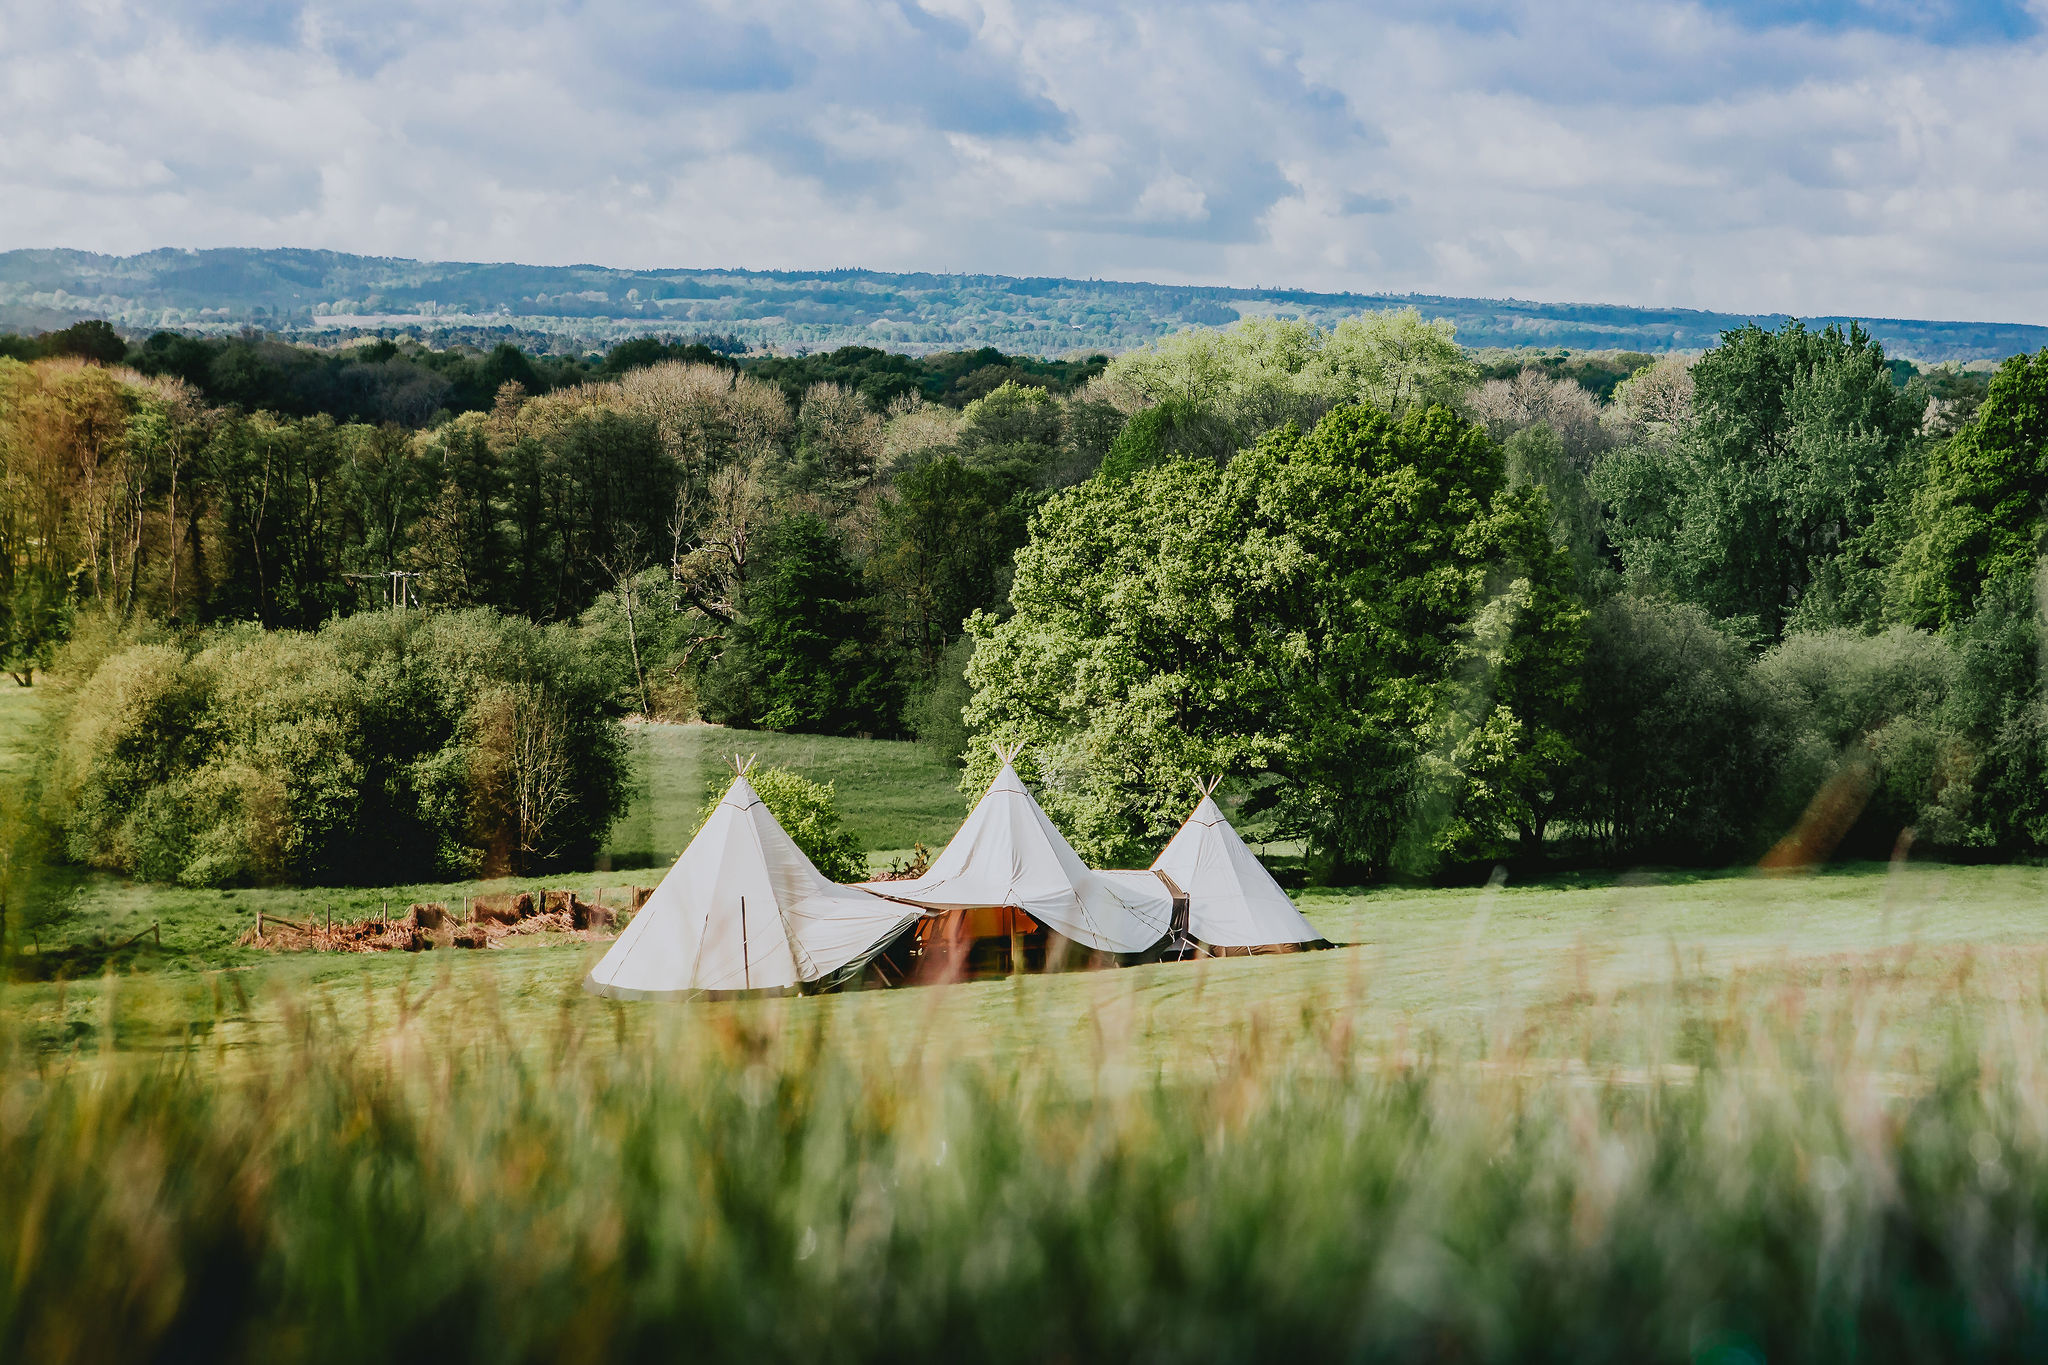 canvas-and-light-surrey-tipi-hire-2.jpg